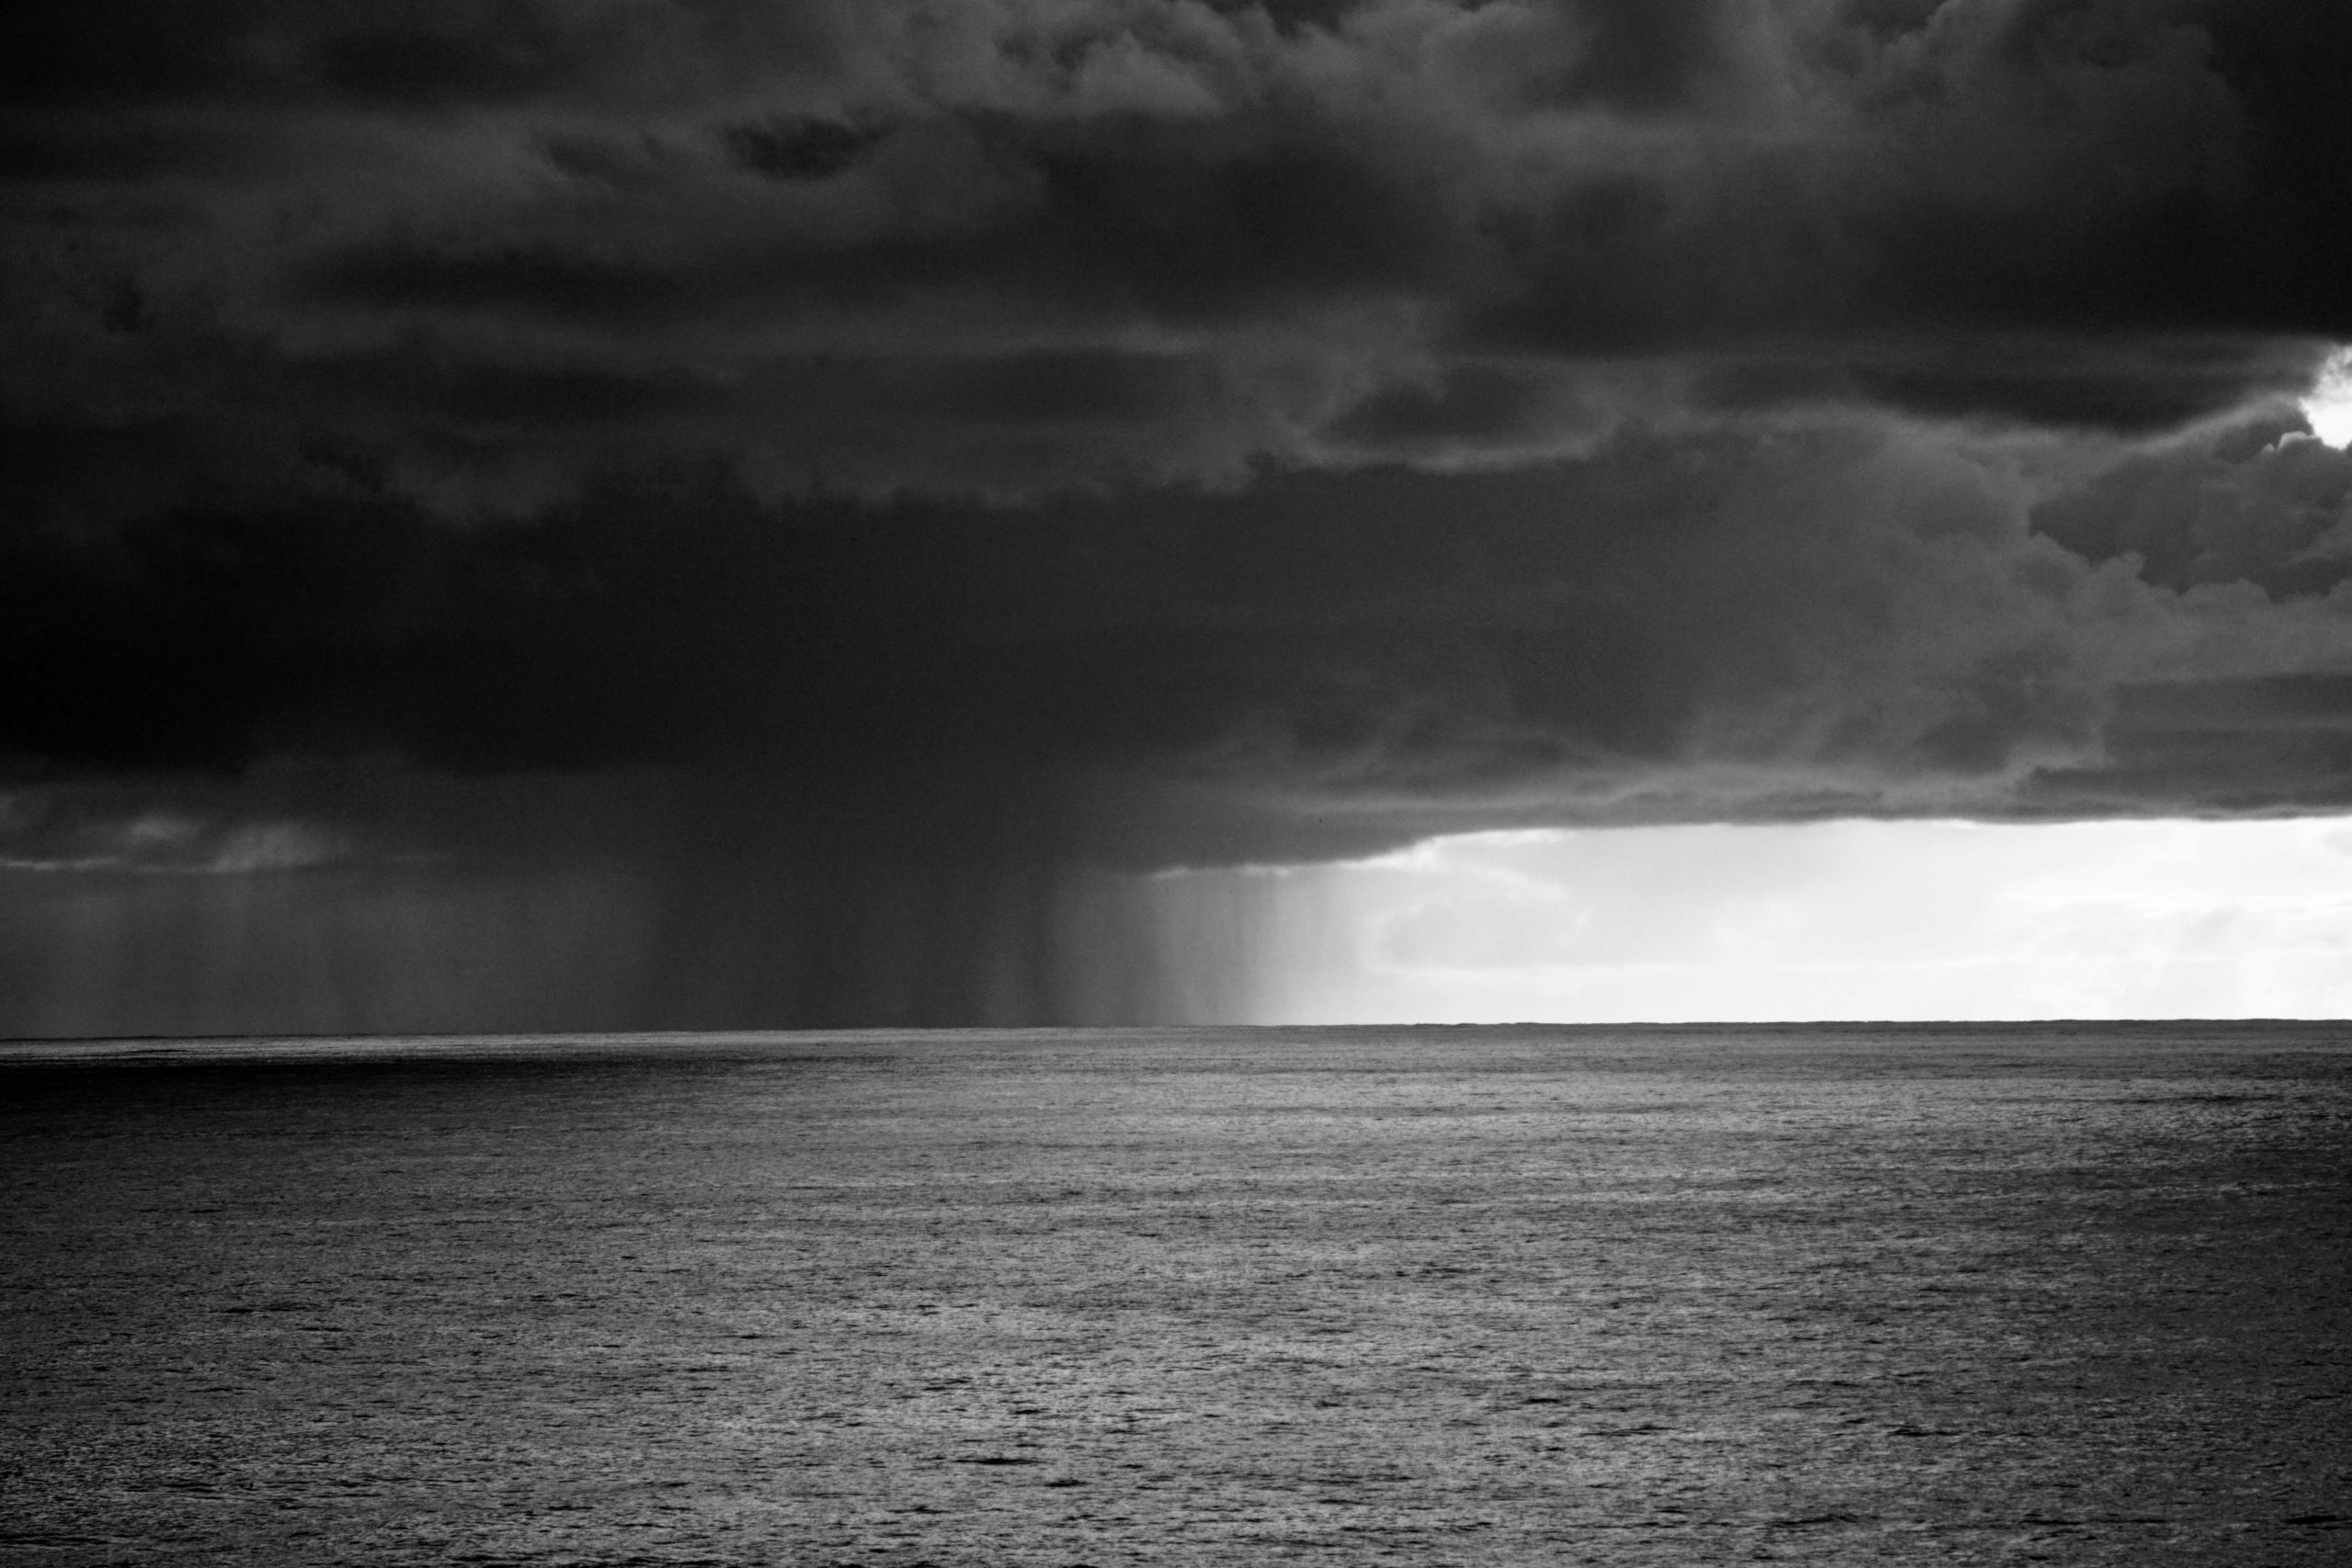 A black and white image of a dark grey cloud hovering over the ocean, rain forming to the left.